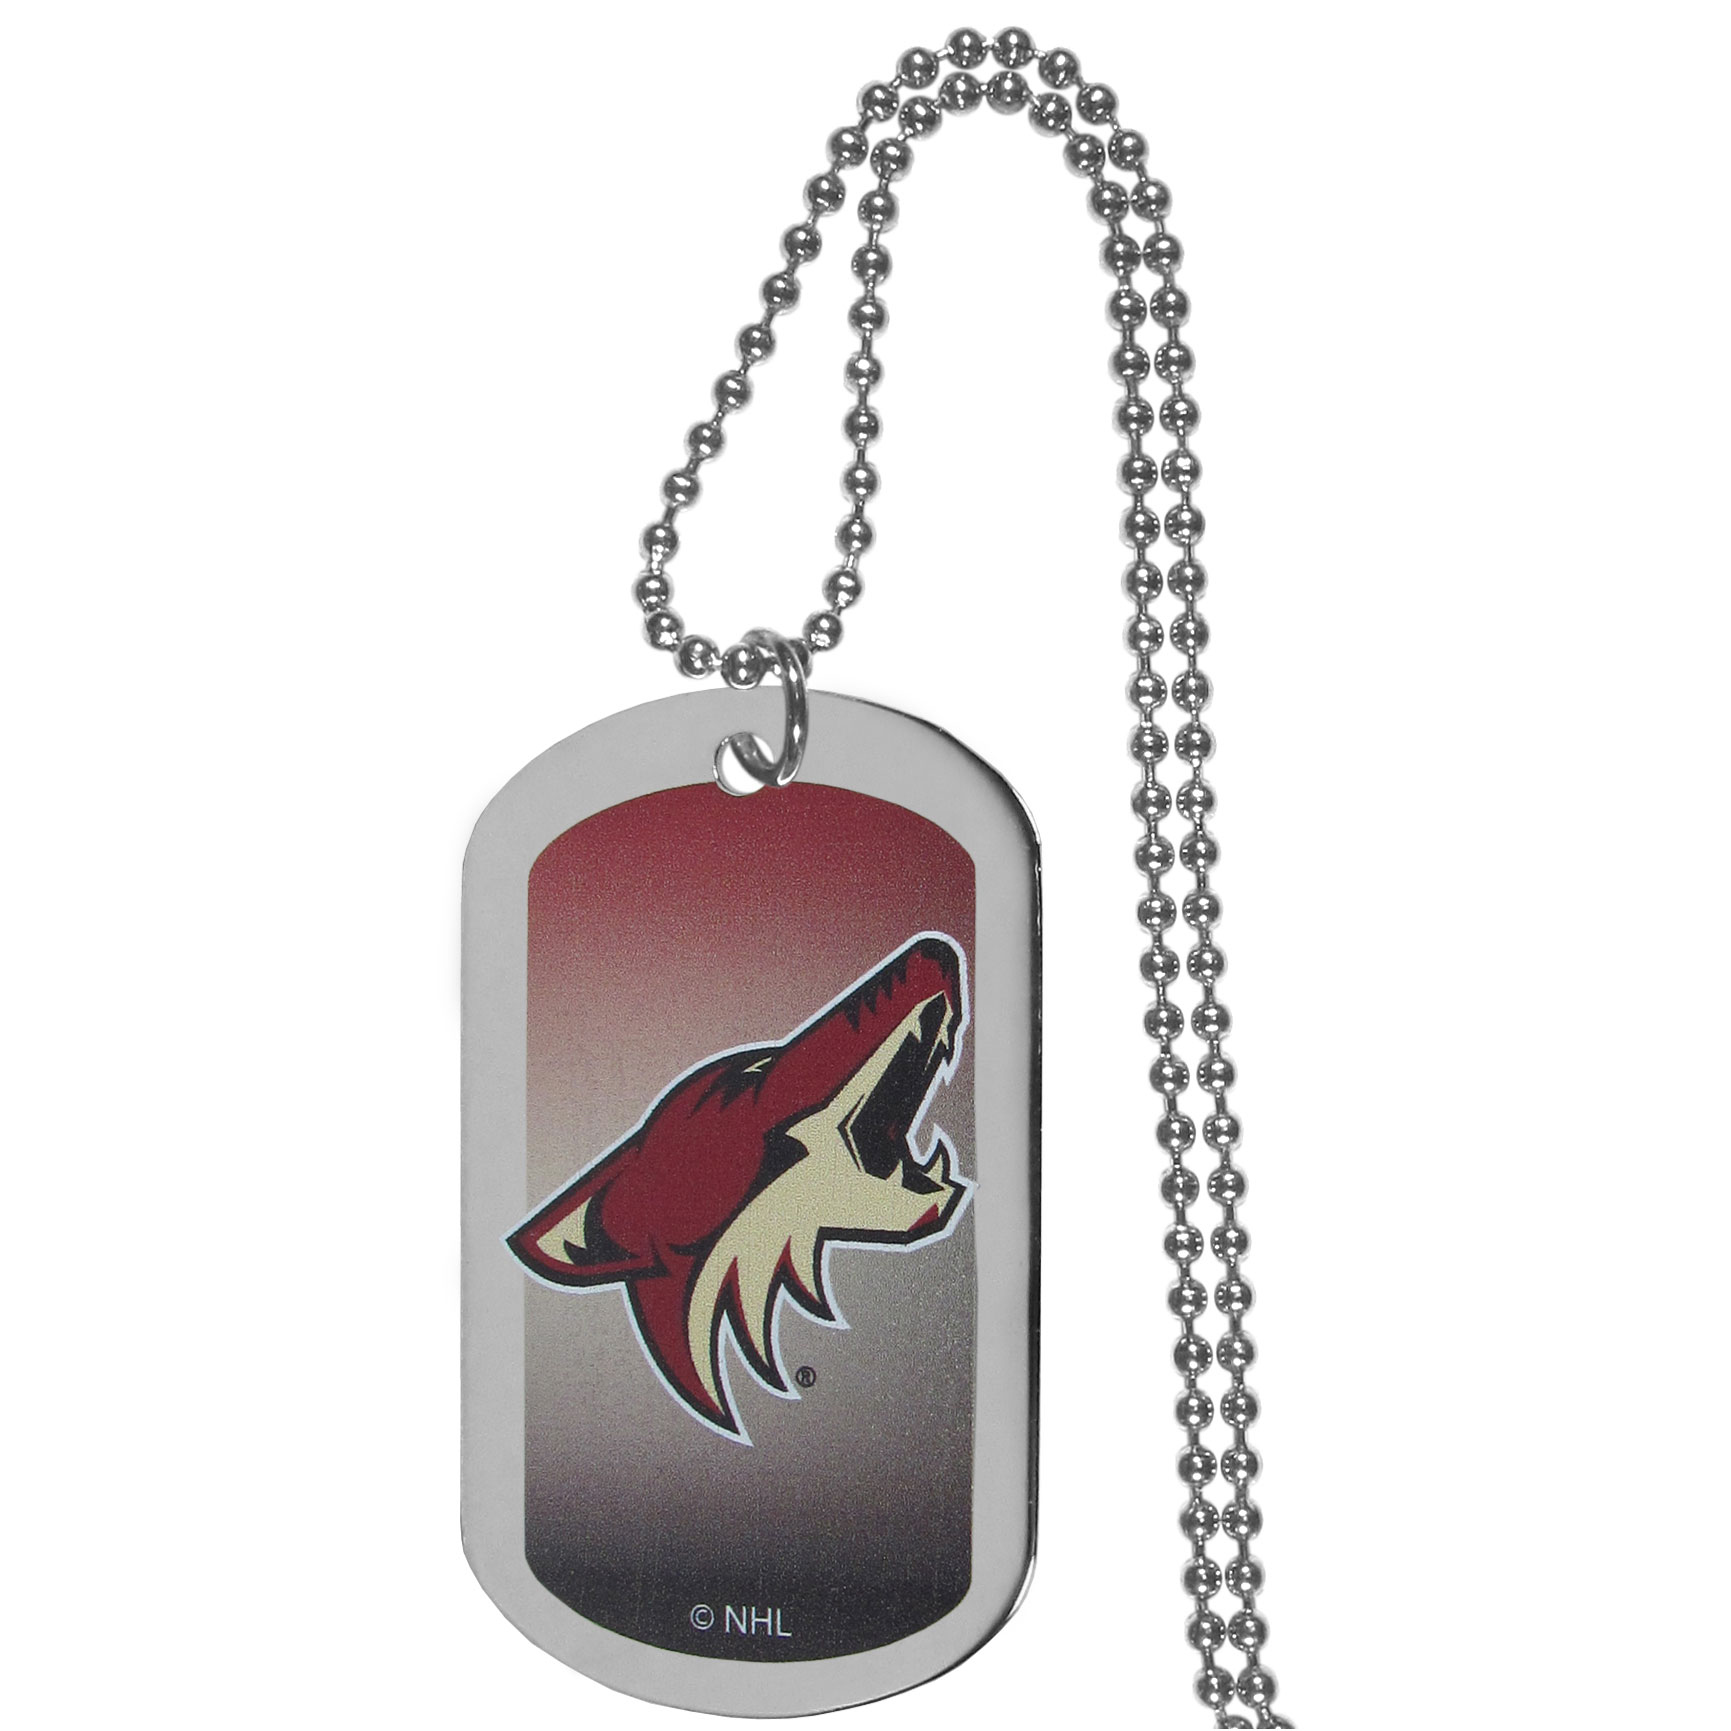 Arizona Coyotes® Team Tag Necklace - Dog tag necklaces are a fashion statement that is here to stay. The sporty version of the classic tag features a gradient print in team colors featuring a full color team logo over a high polish tag to create a bold and sporty look. The tag comes on a 26 inch ball chain with a ball and joint clasp. Any Arizona Coyotes® would be proud to wear this attractive fashion accessory.